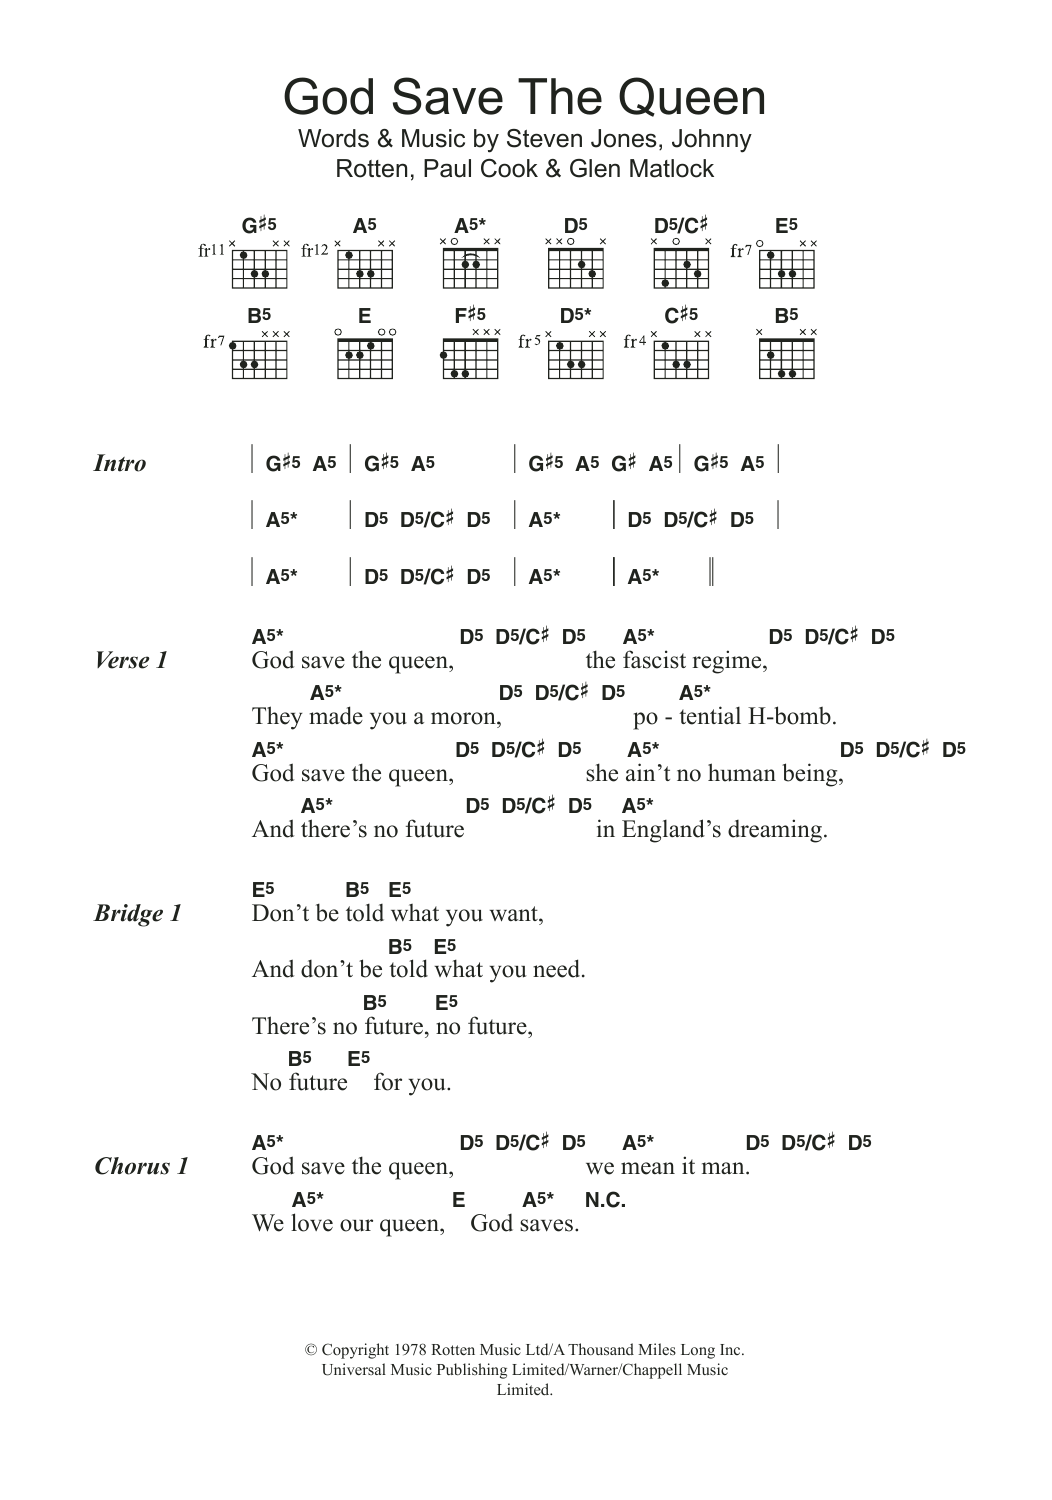 God Save The QueenThe Sex Pistols Guitar Chords Lyrics 04cc46216